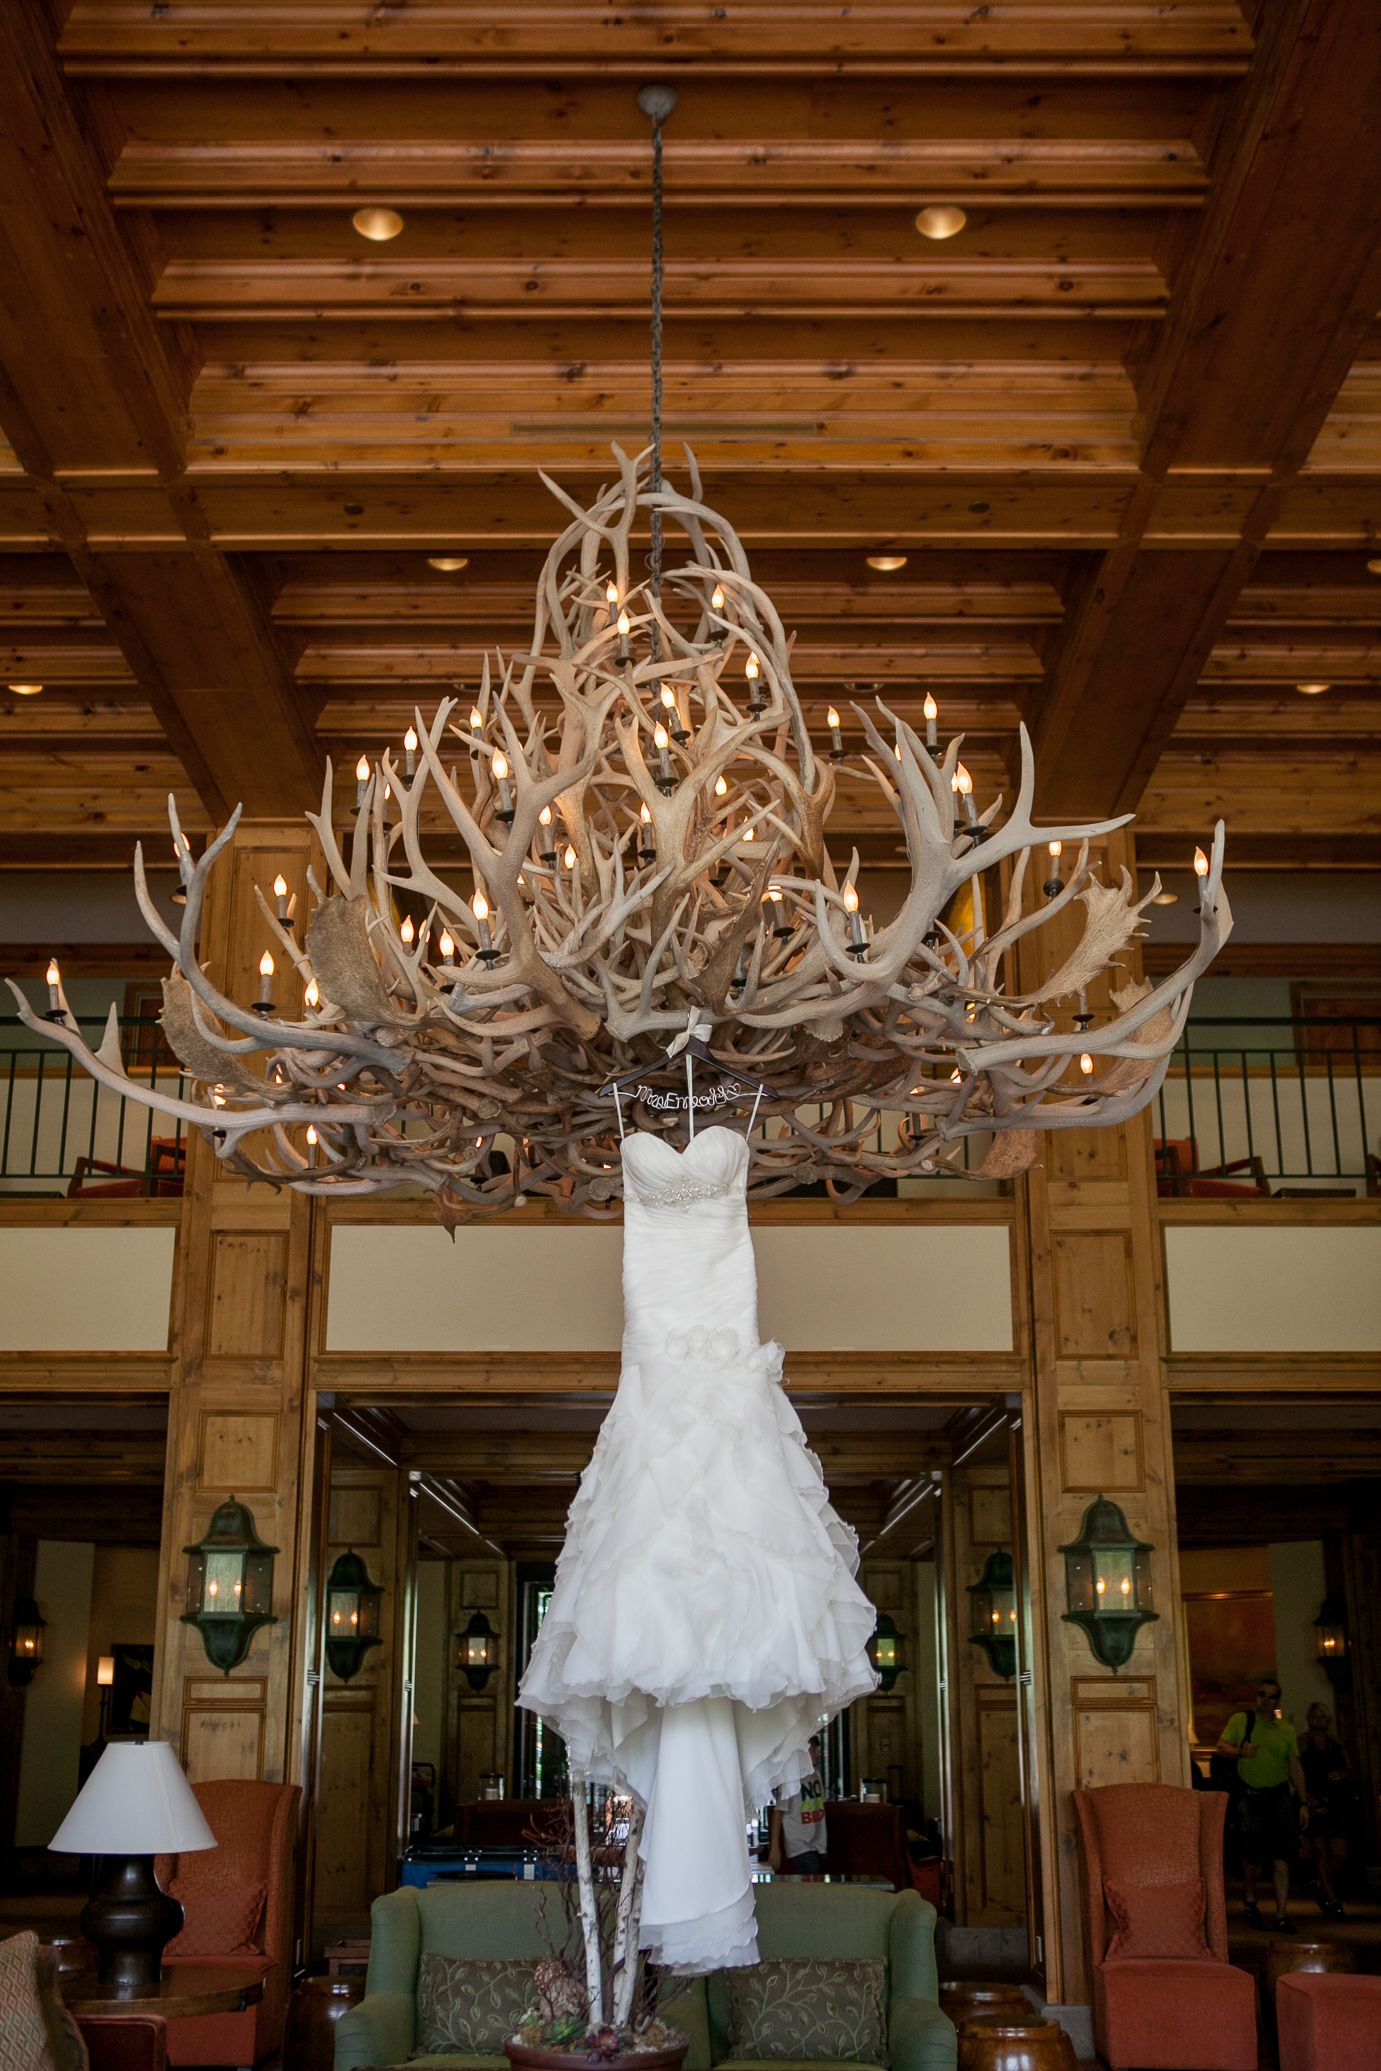 Incredible photo by jm photoart love the weddingdress on the unique antler chandelier at park hyatt beaver creek resort spa in rocky mountain colorado arubaitofo Image collections